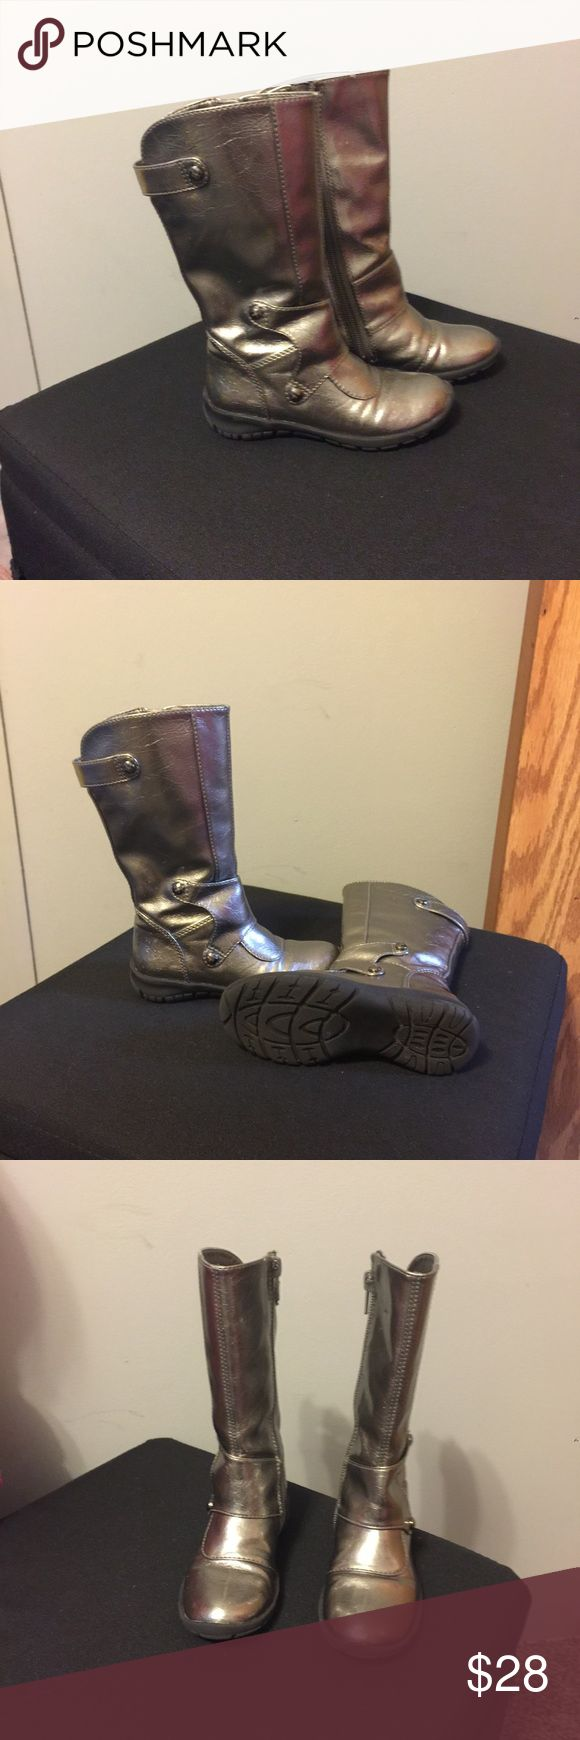 Toddler Nordstrom Boots Size 24-converts to size 7  Like new, tinny cuff on the front of the left boot, unnoticeable.  Fee free to visit my page for more items! Nordstrom Shoes Boots